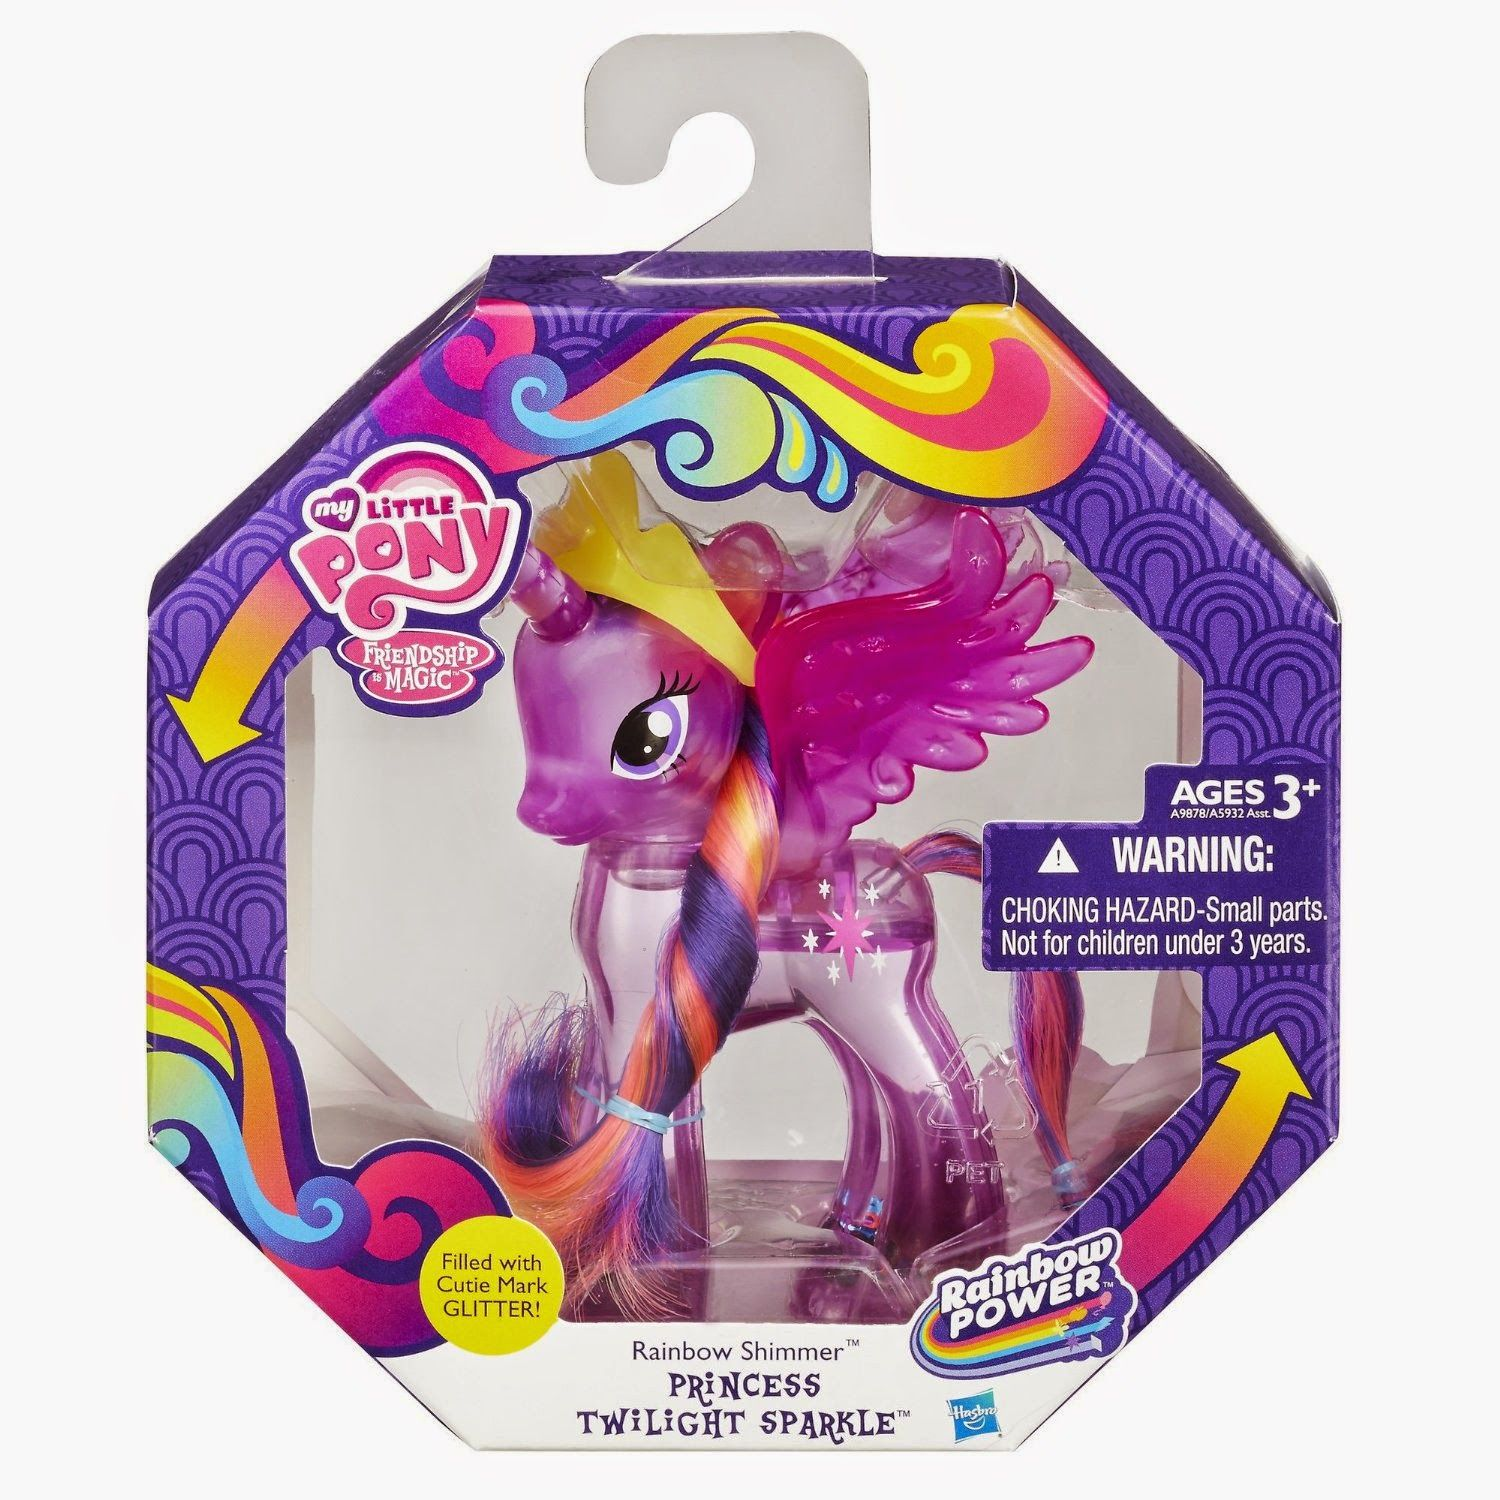 New My Little Pony Rainbow Shimmer Princess Celestia Figure GIFT Game Toy